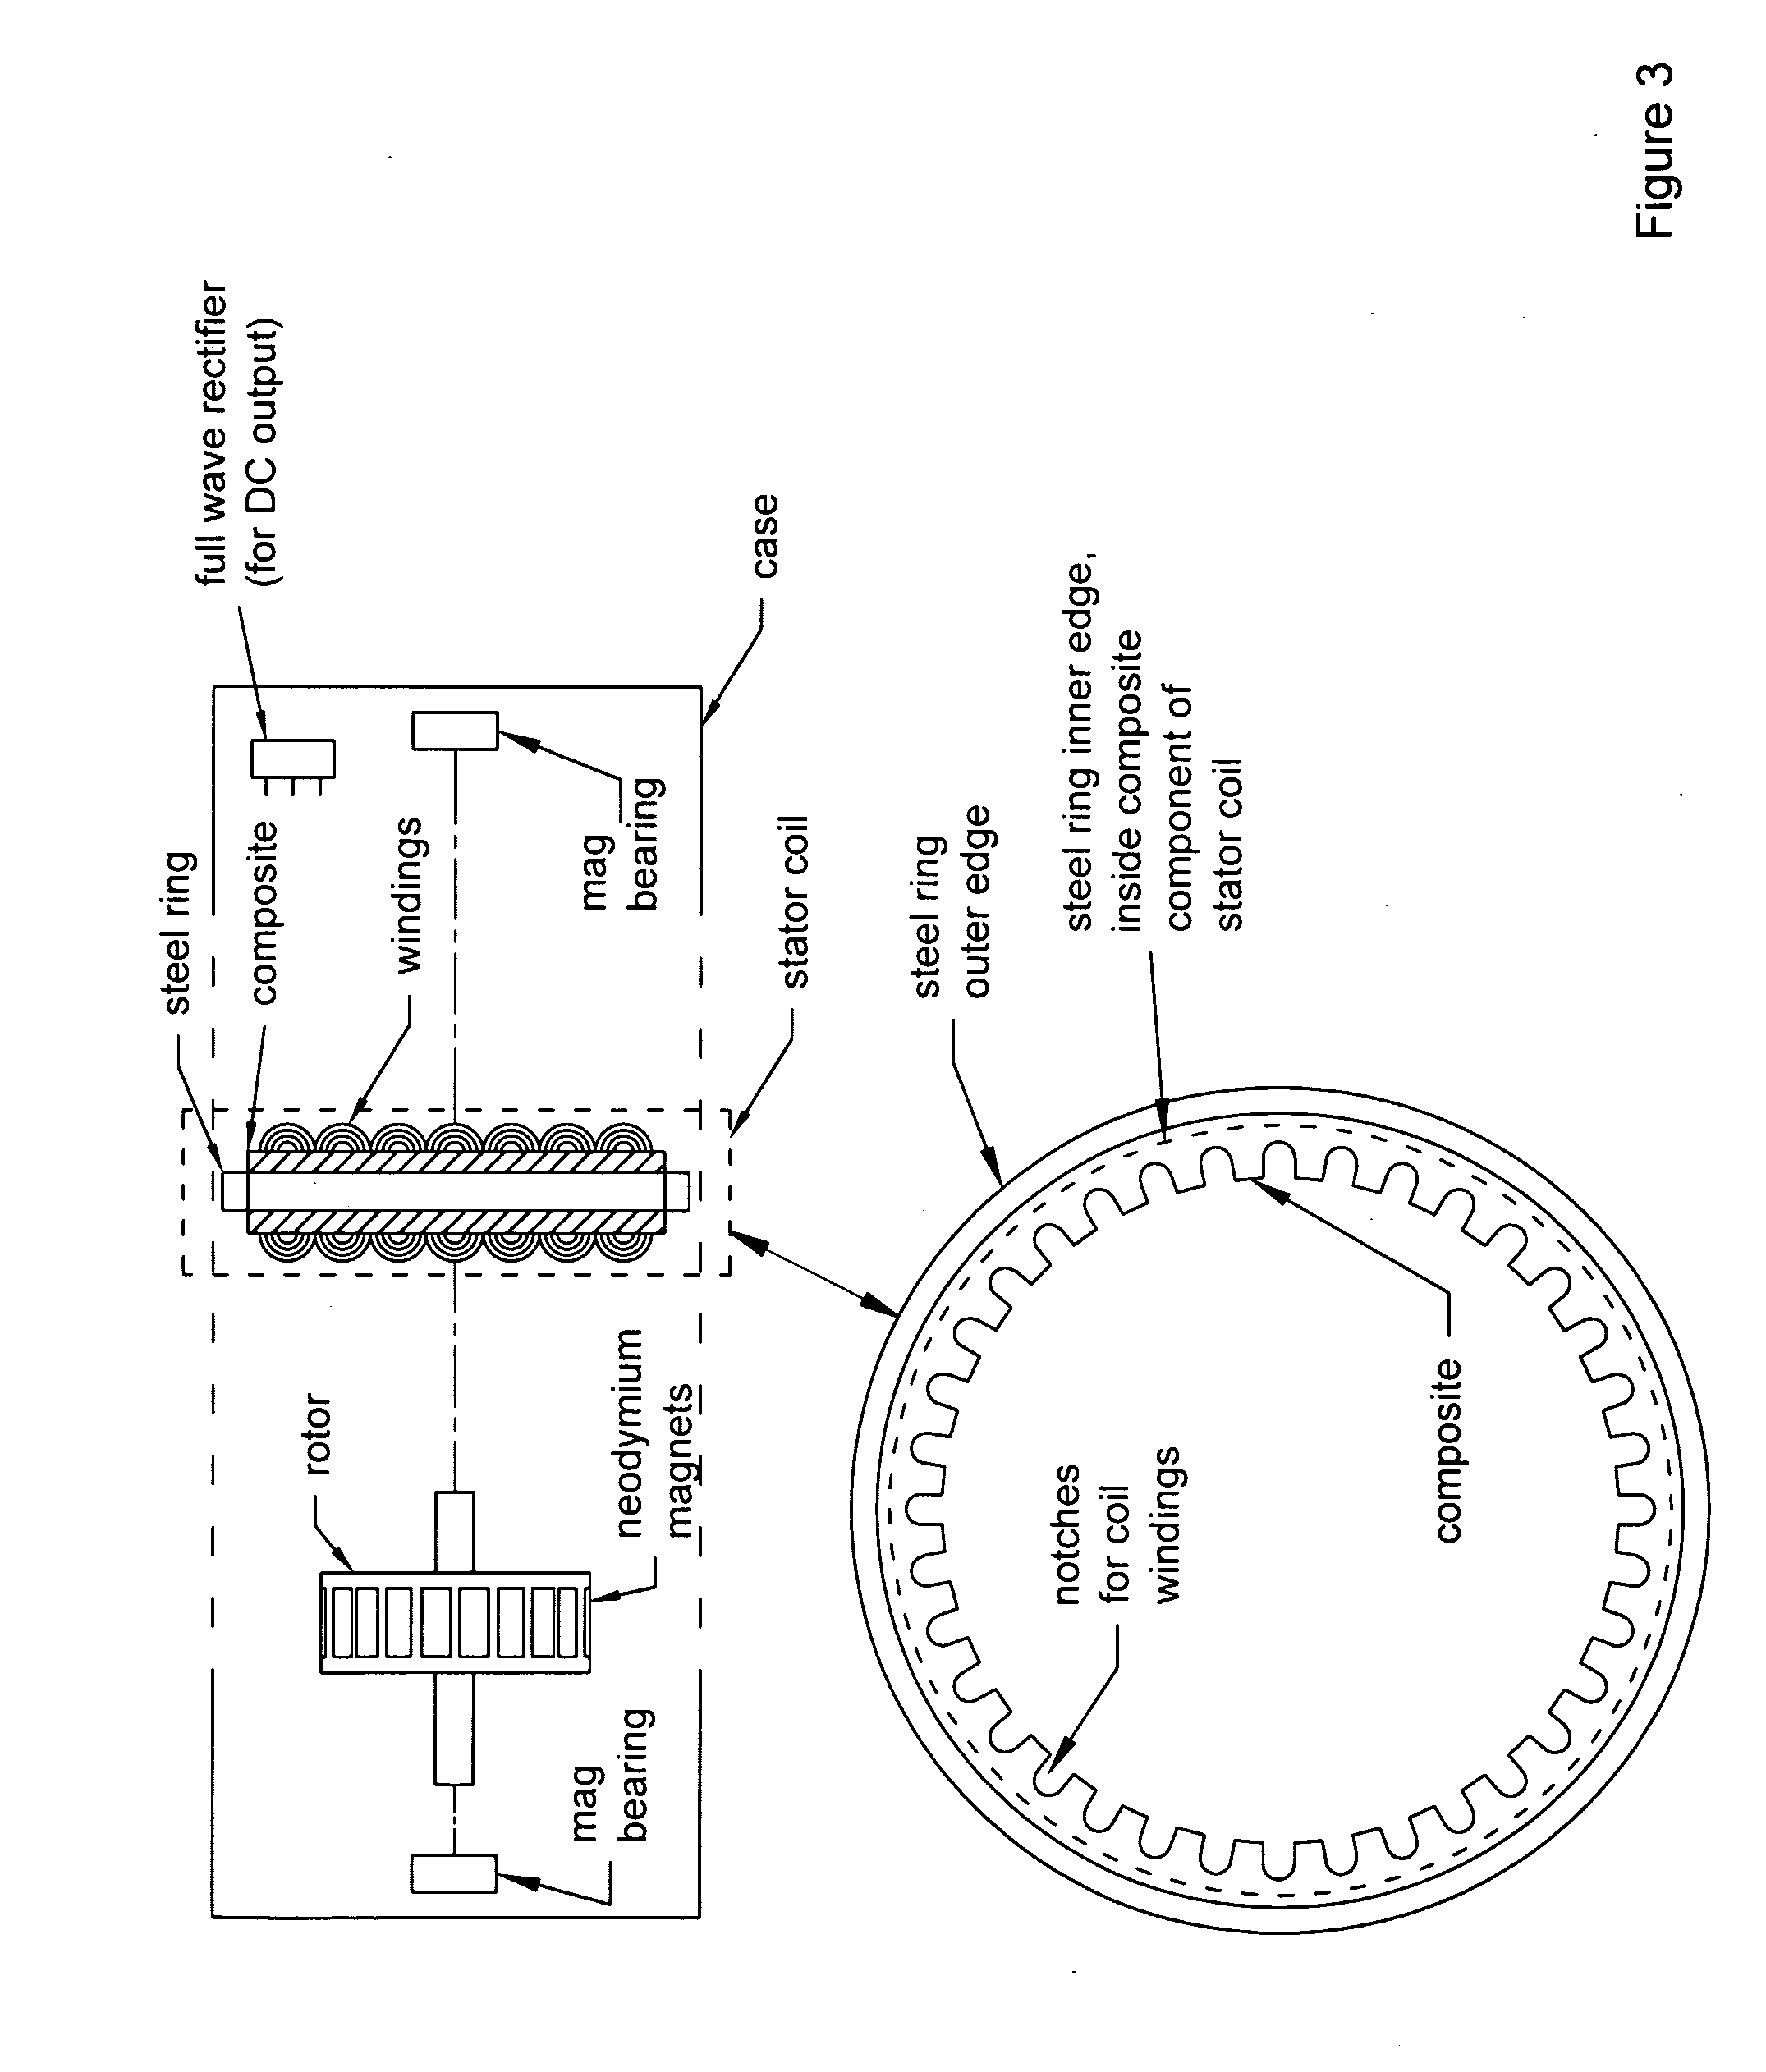 277307265 Figure 1 Hydroelectric Power Generation Diagram 9 besides Hydro also Peltonturbine also US20120207588 further Dcpat. on micro hydroelectric power